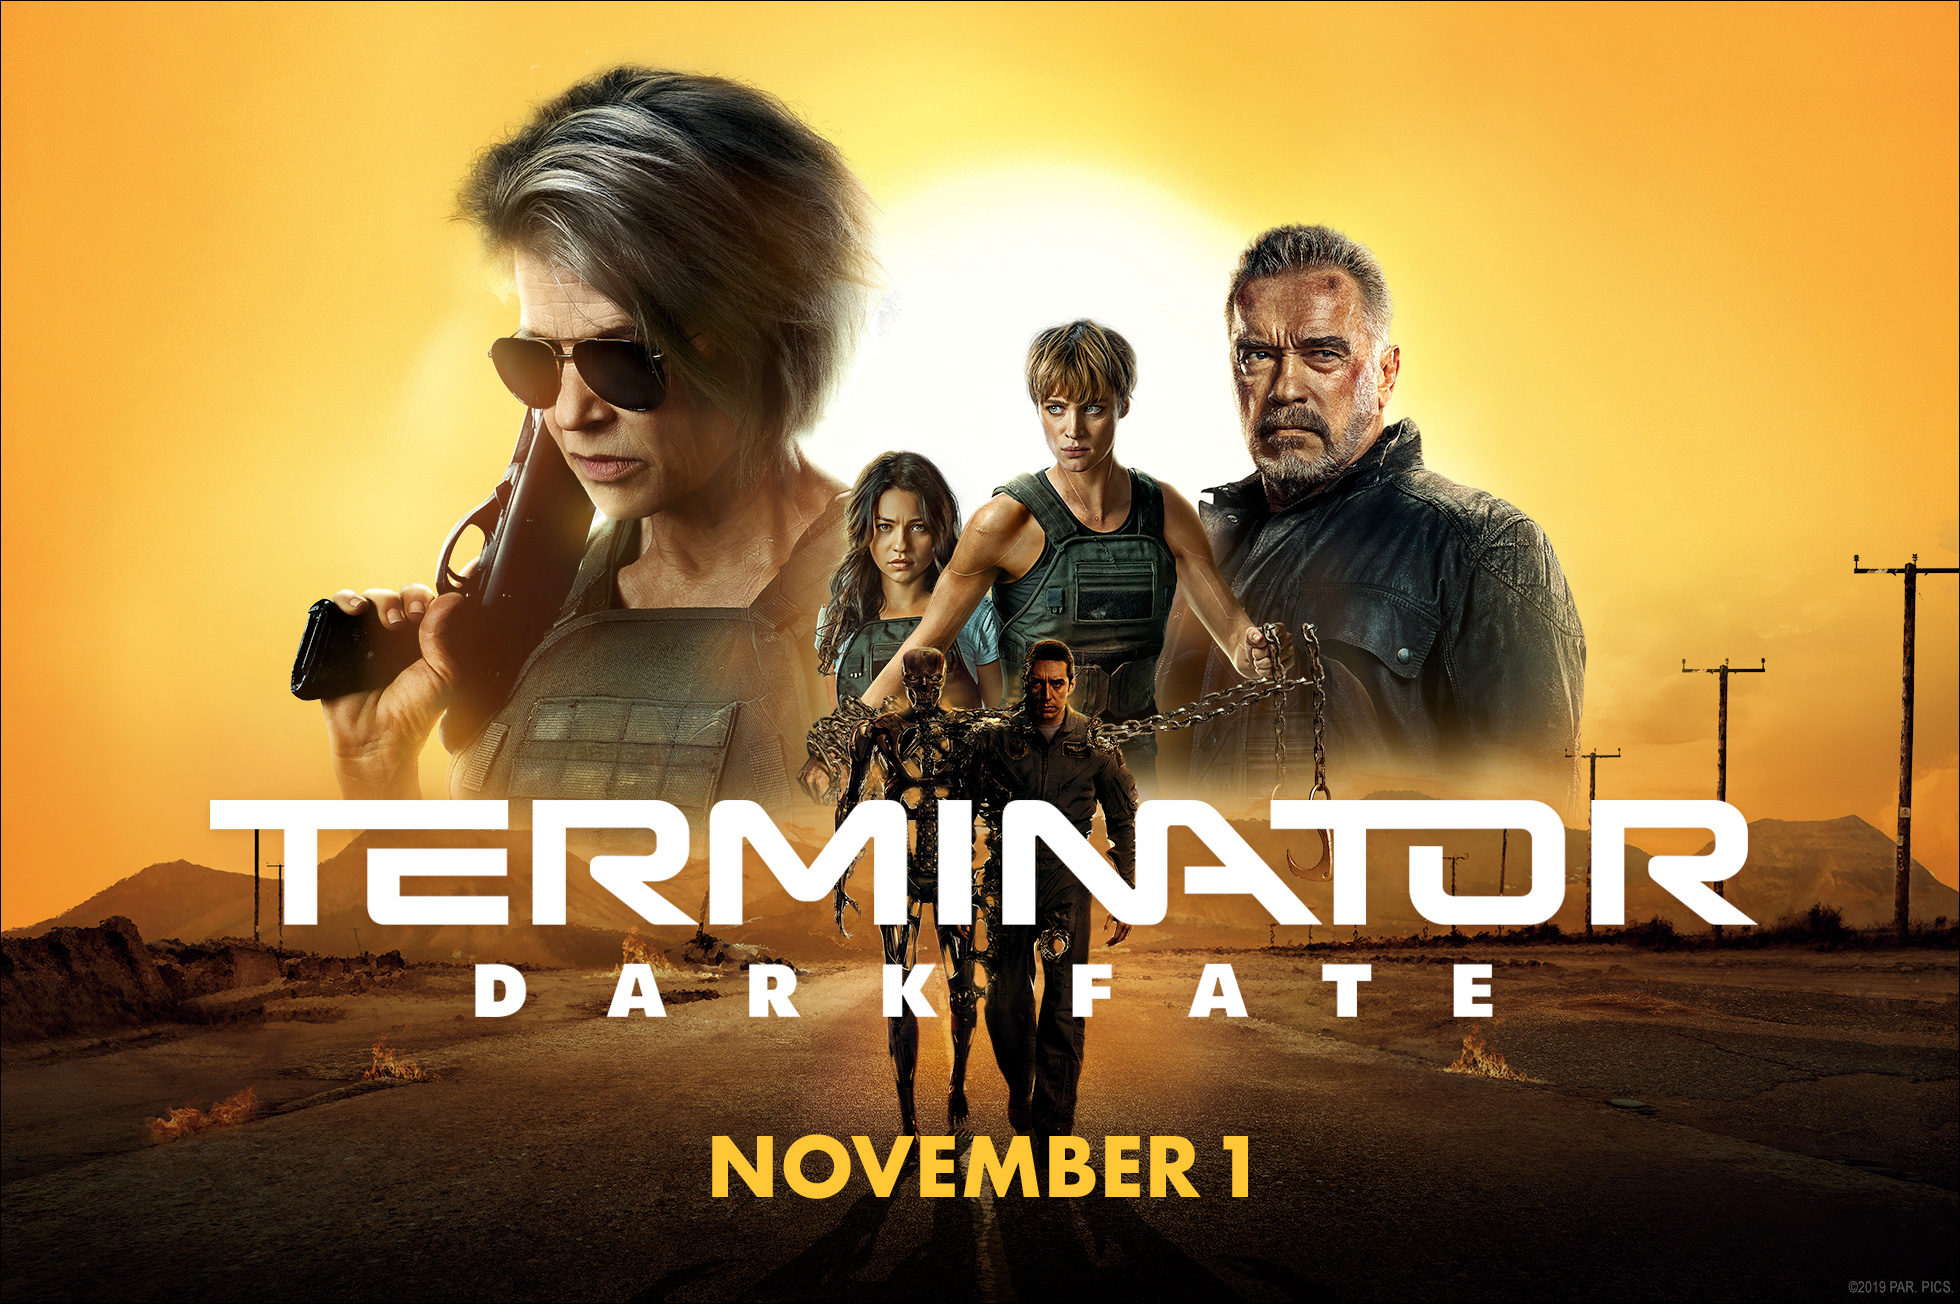 'Terminator: Dark Fate' - landscape artwork